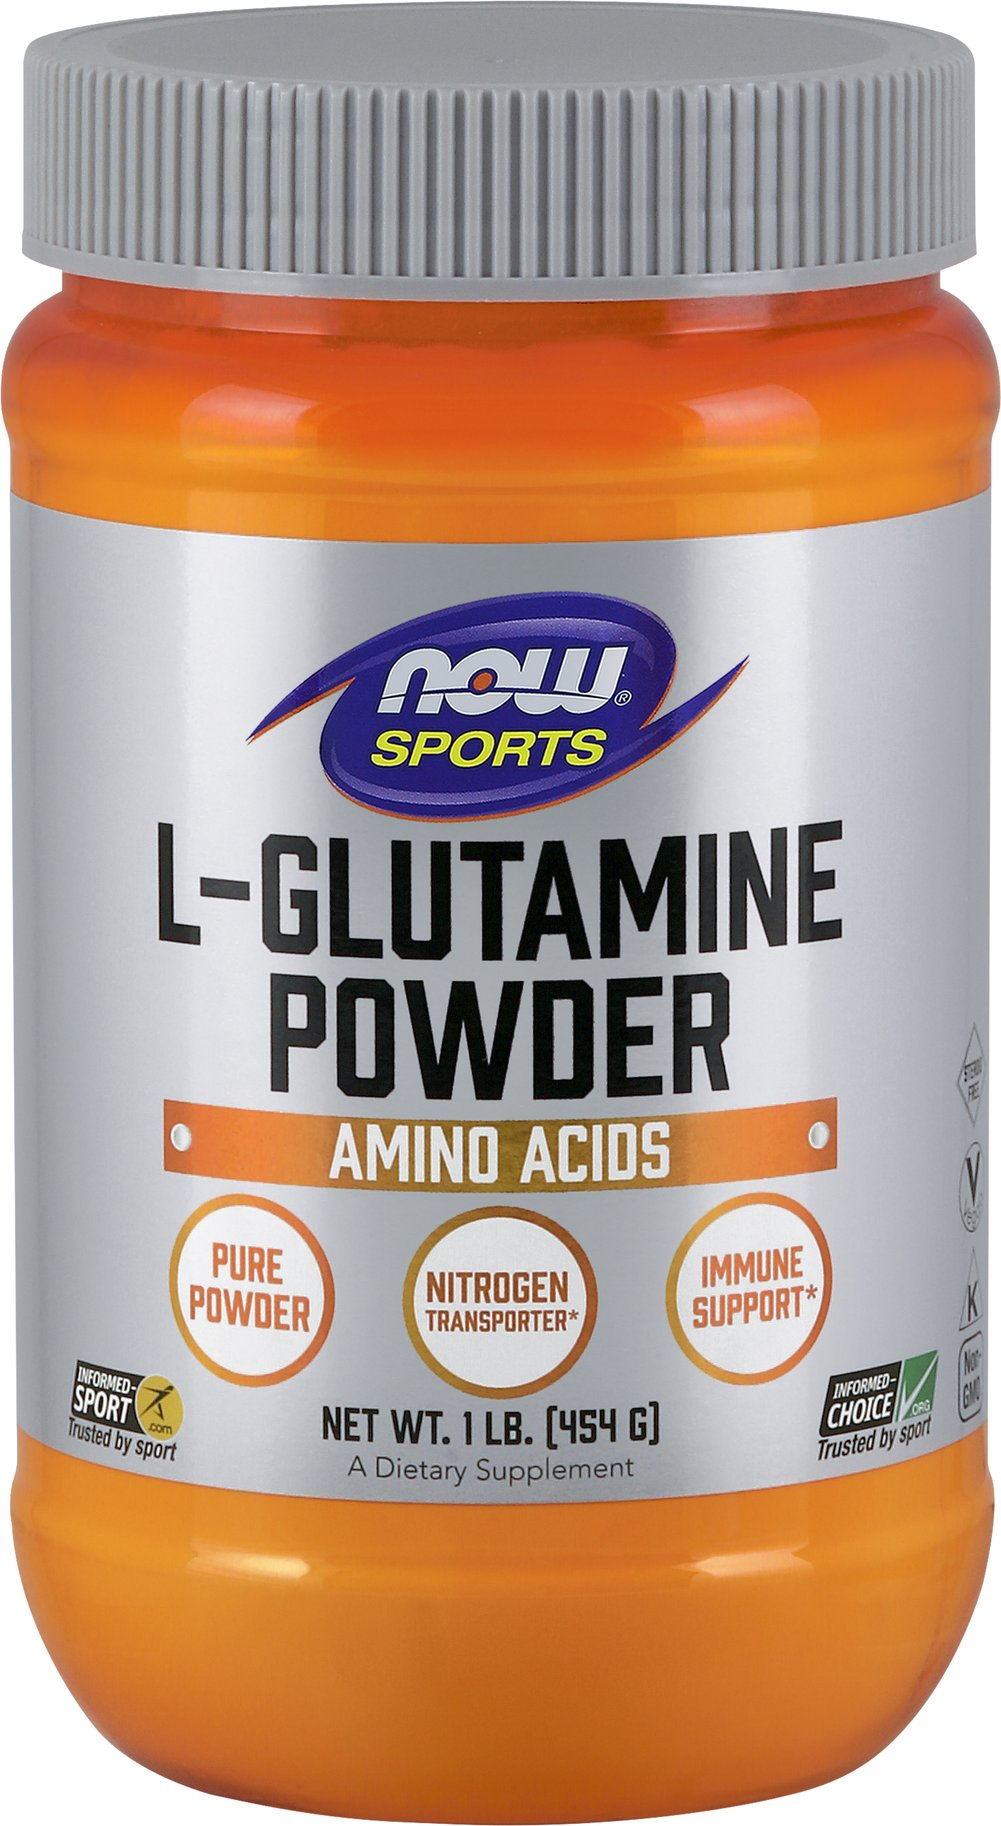 L-Glutamine Powder 5000 mg <p><strong>From the Manufacturer's Label:</strong></p><p>L-Glutamine 5000 mg Powder is manufactured by NOW® Foods.</p> 1 lb Powder 5000 mg $22.99